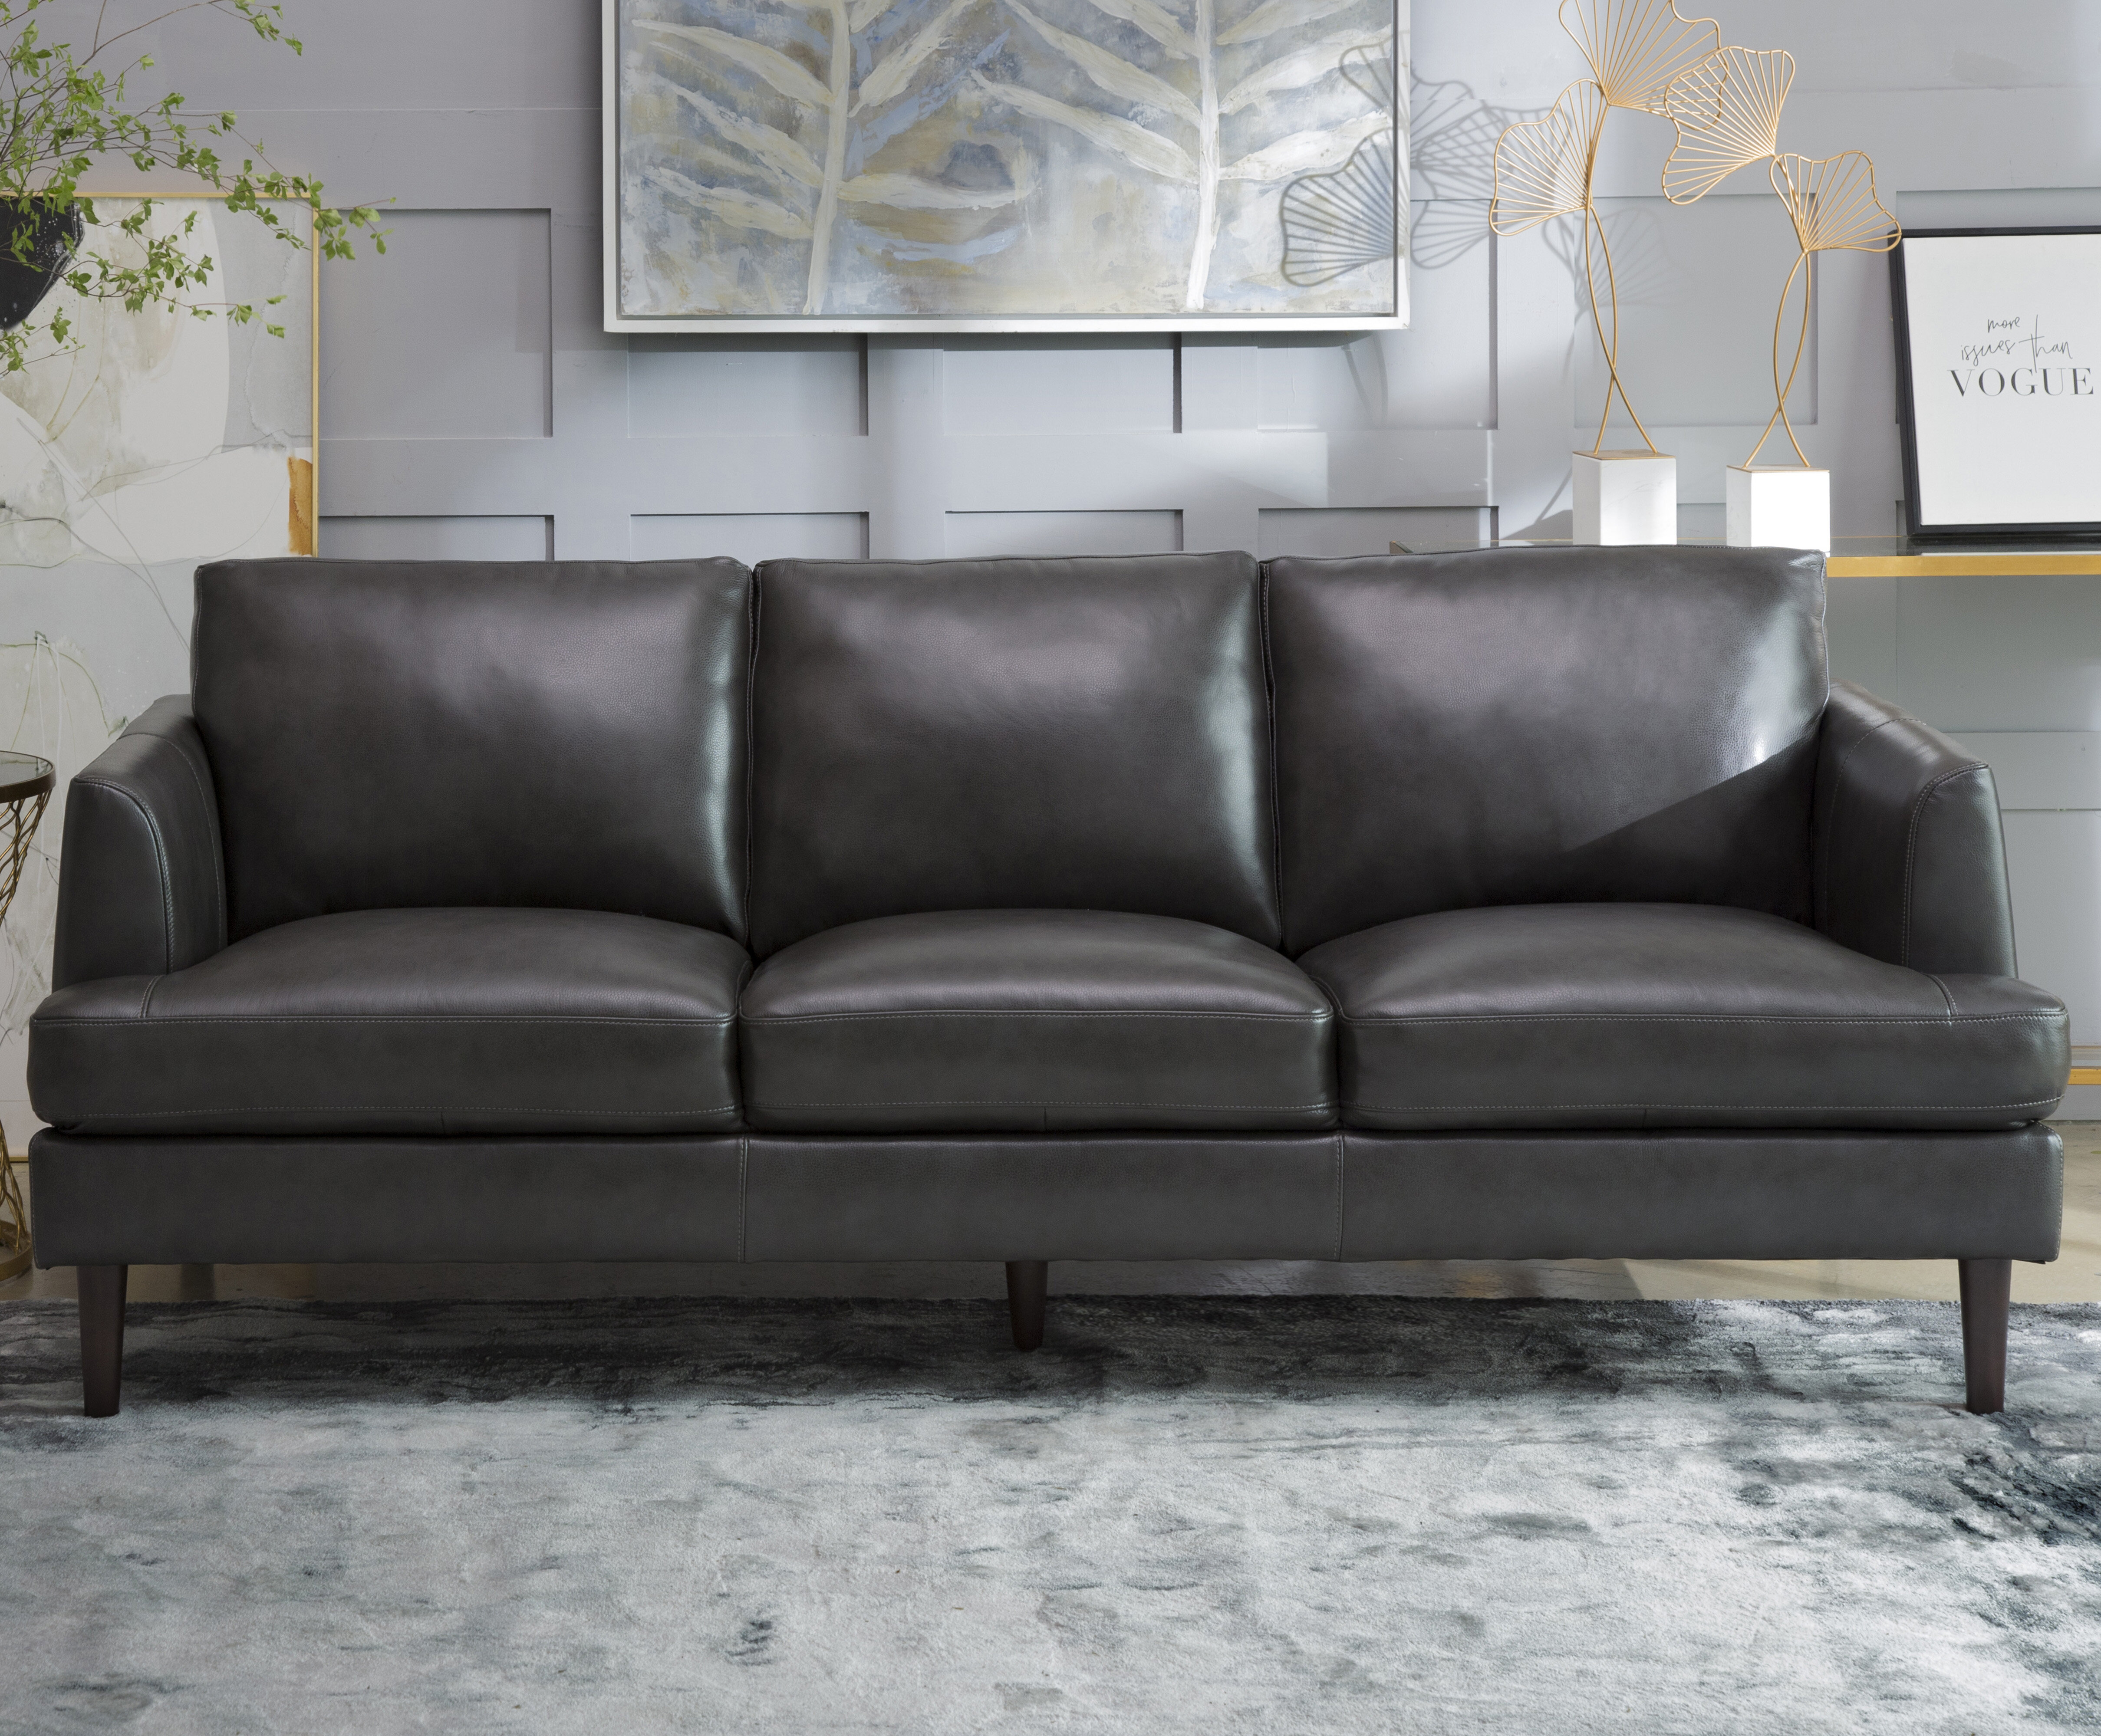 Latitude Run Awaah Genuine Leather 83 46 Recessed Arm Sofa Wayfair